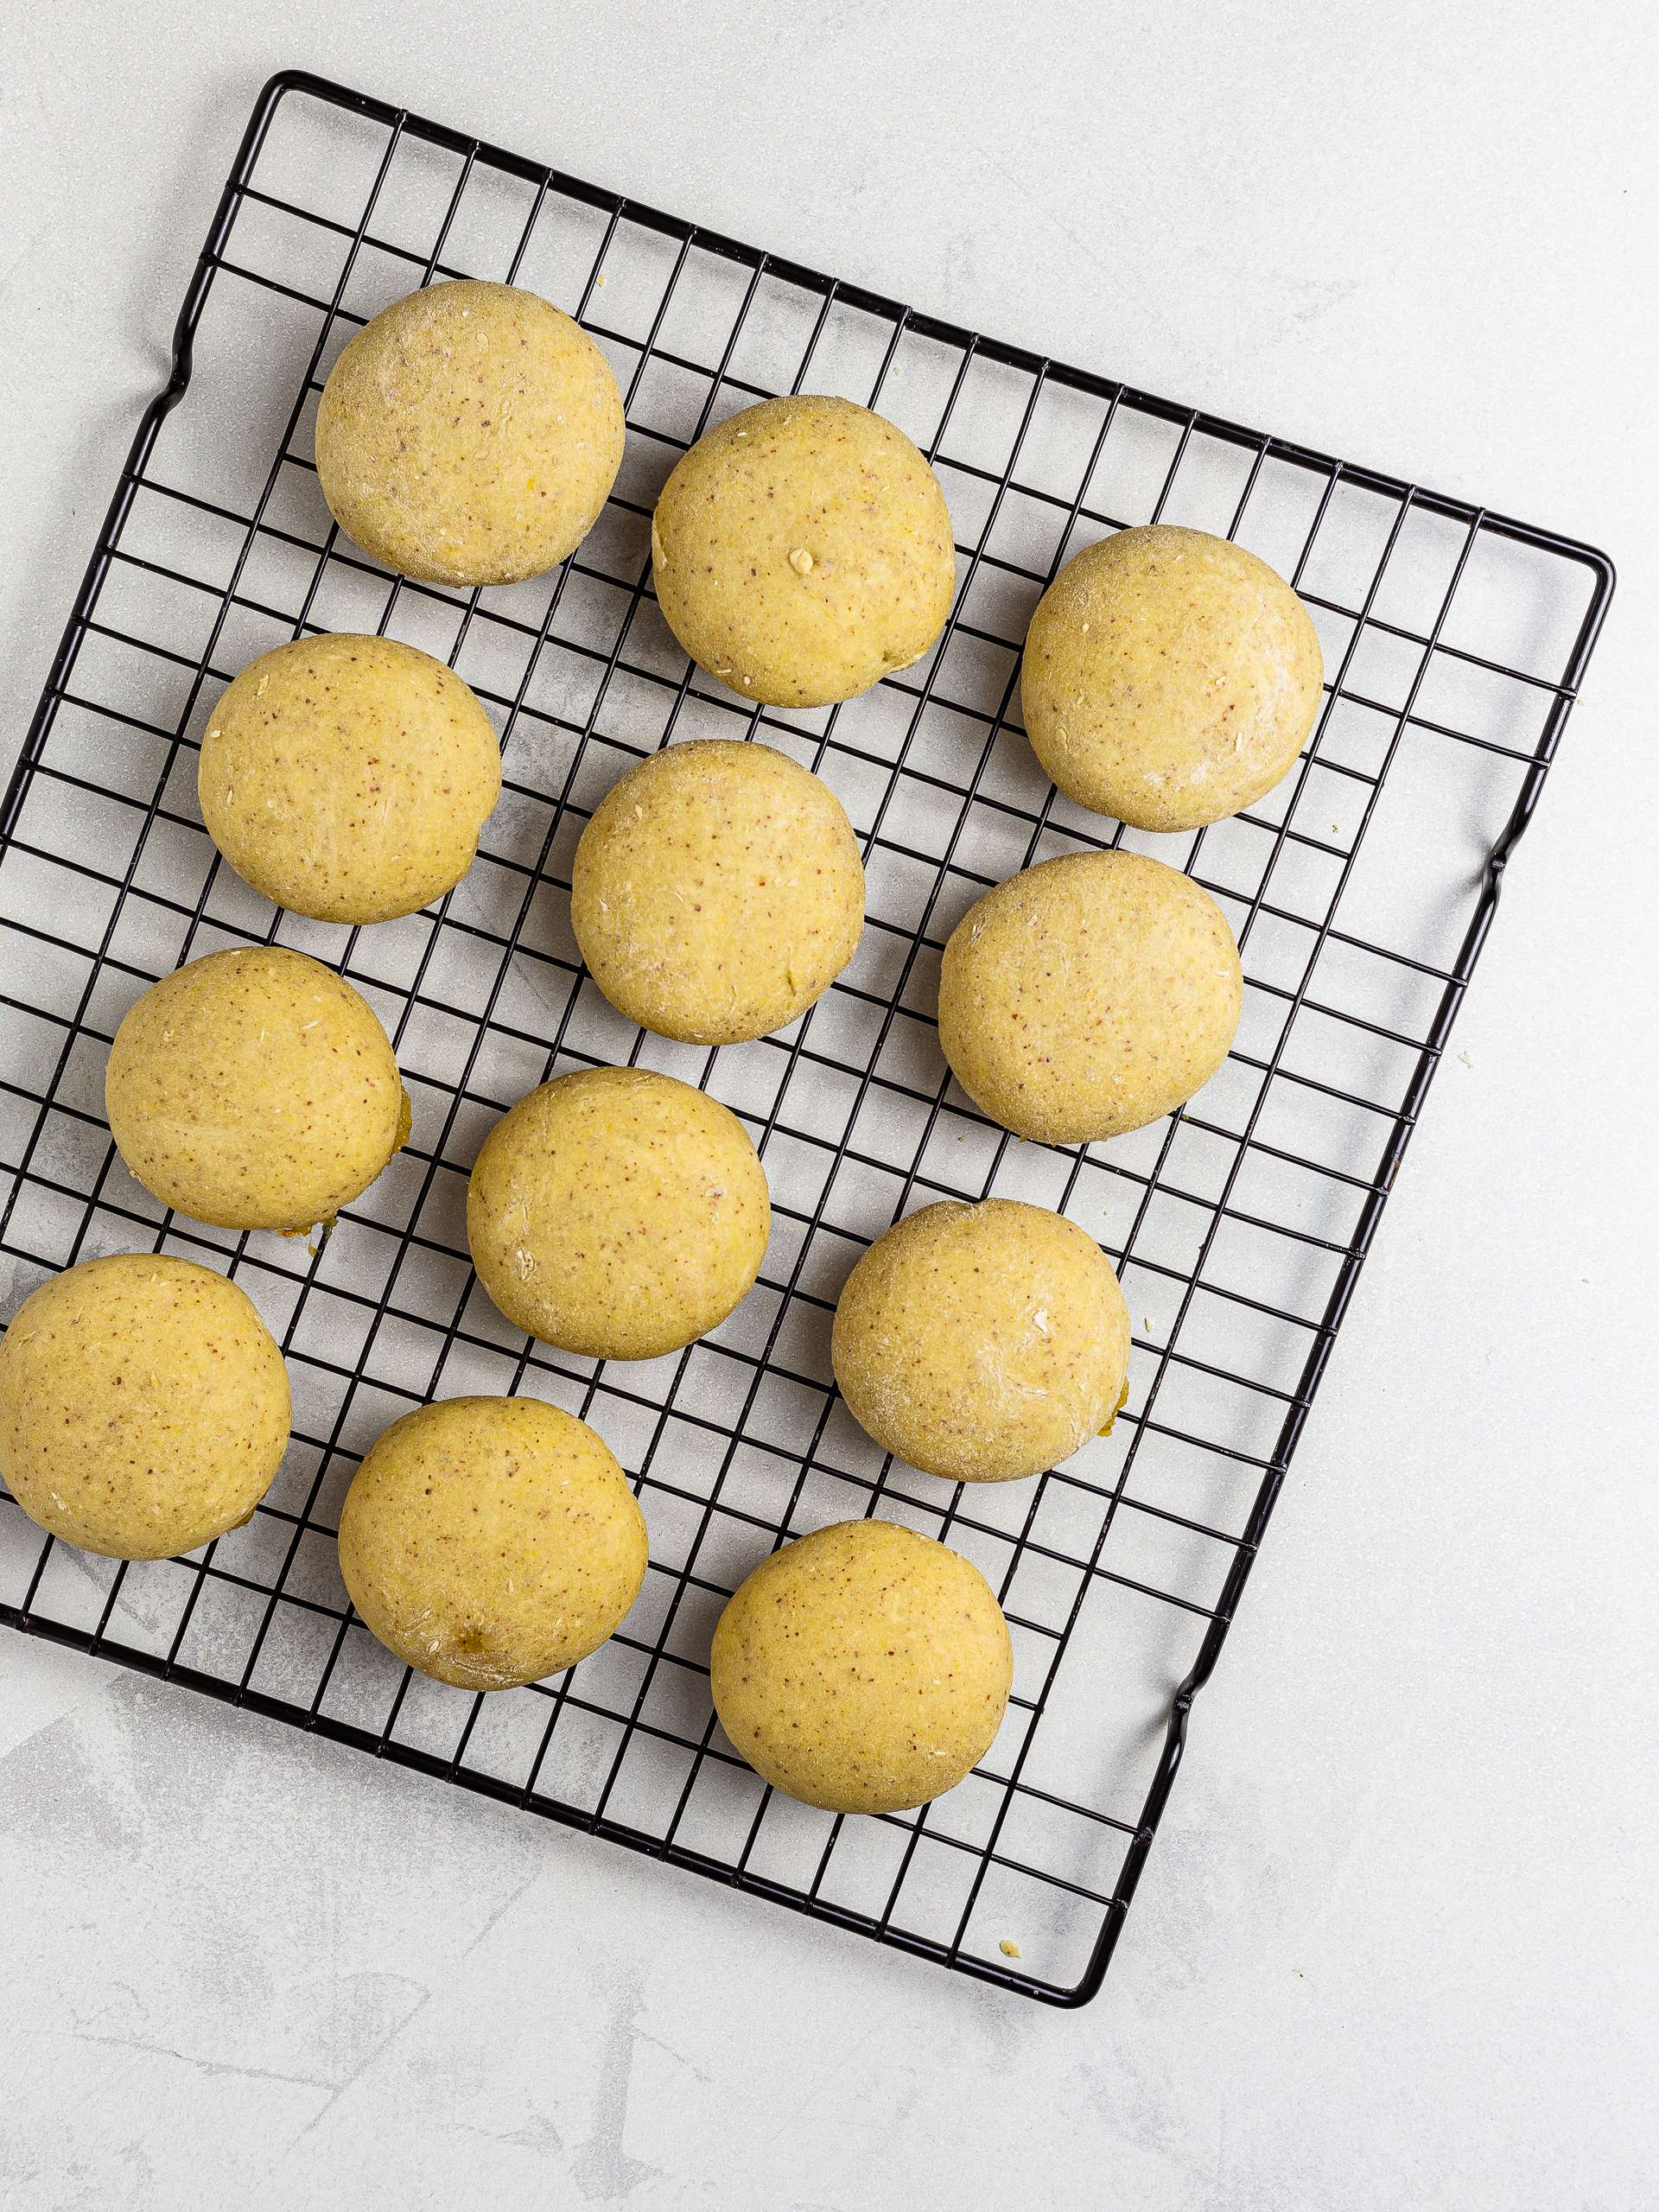 oven-baked kue nastar cookies on a rack